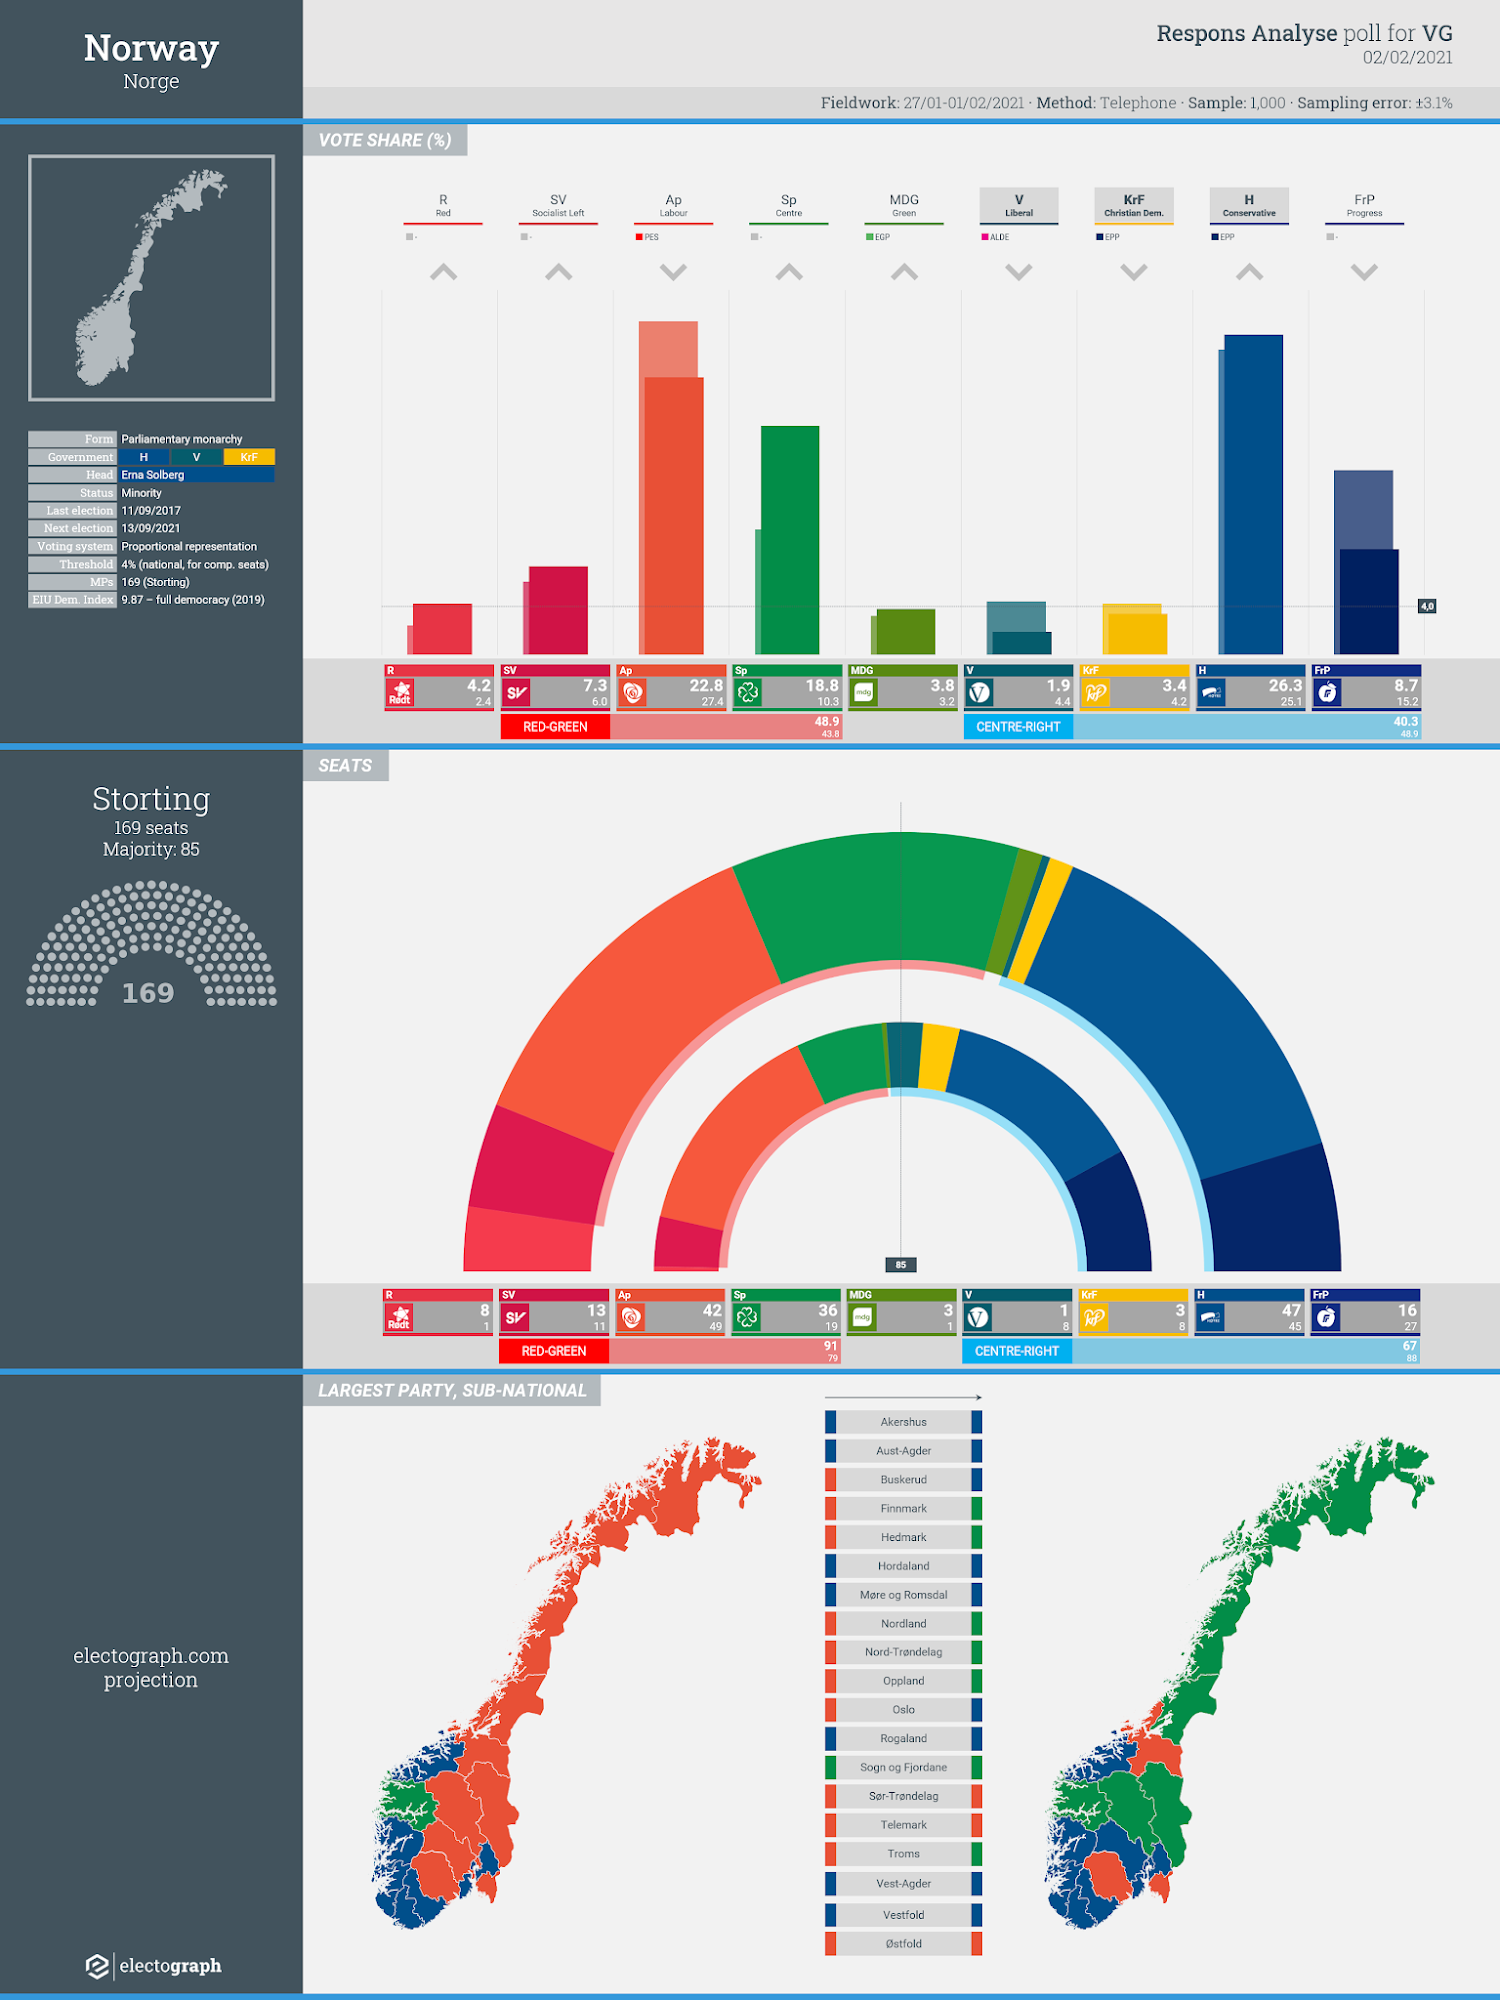 NORWAY: Respons Analyse poll chart for VG, 2 February 2021